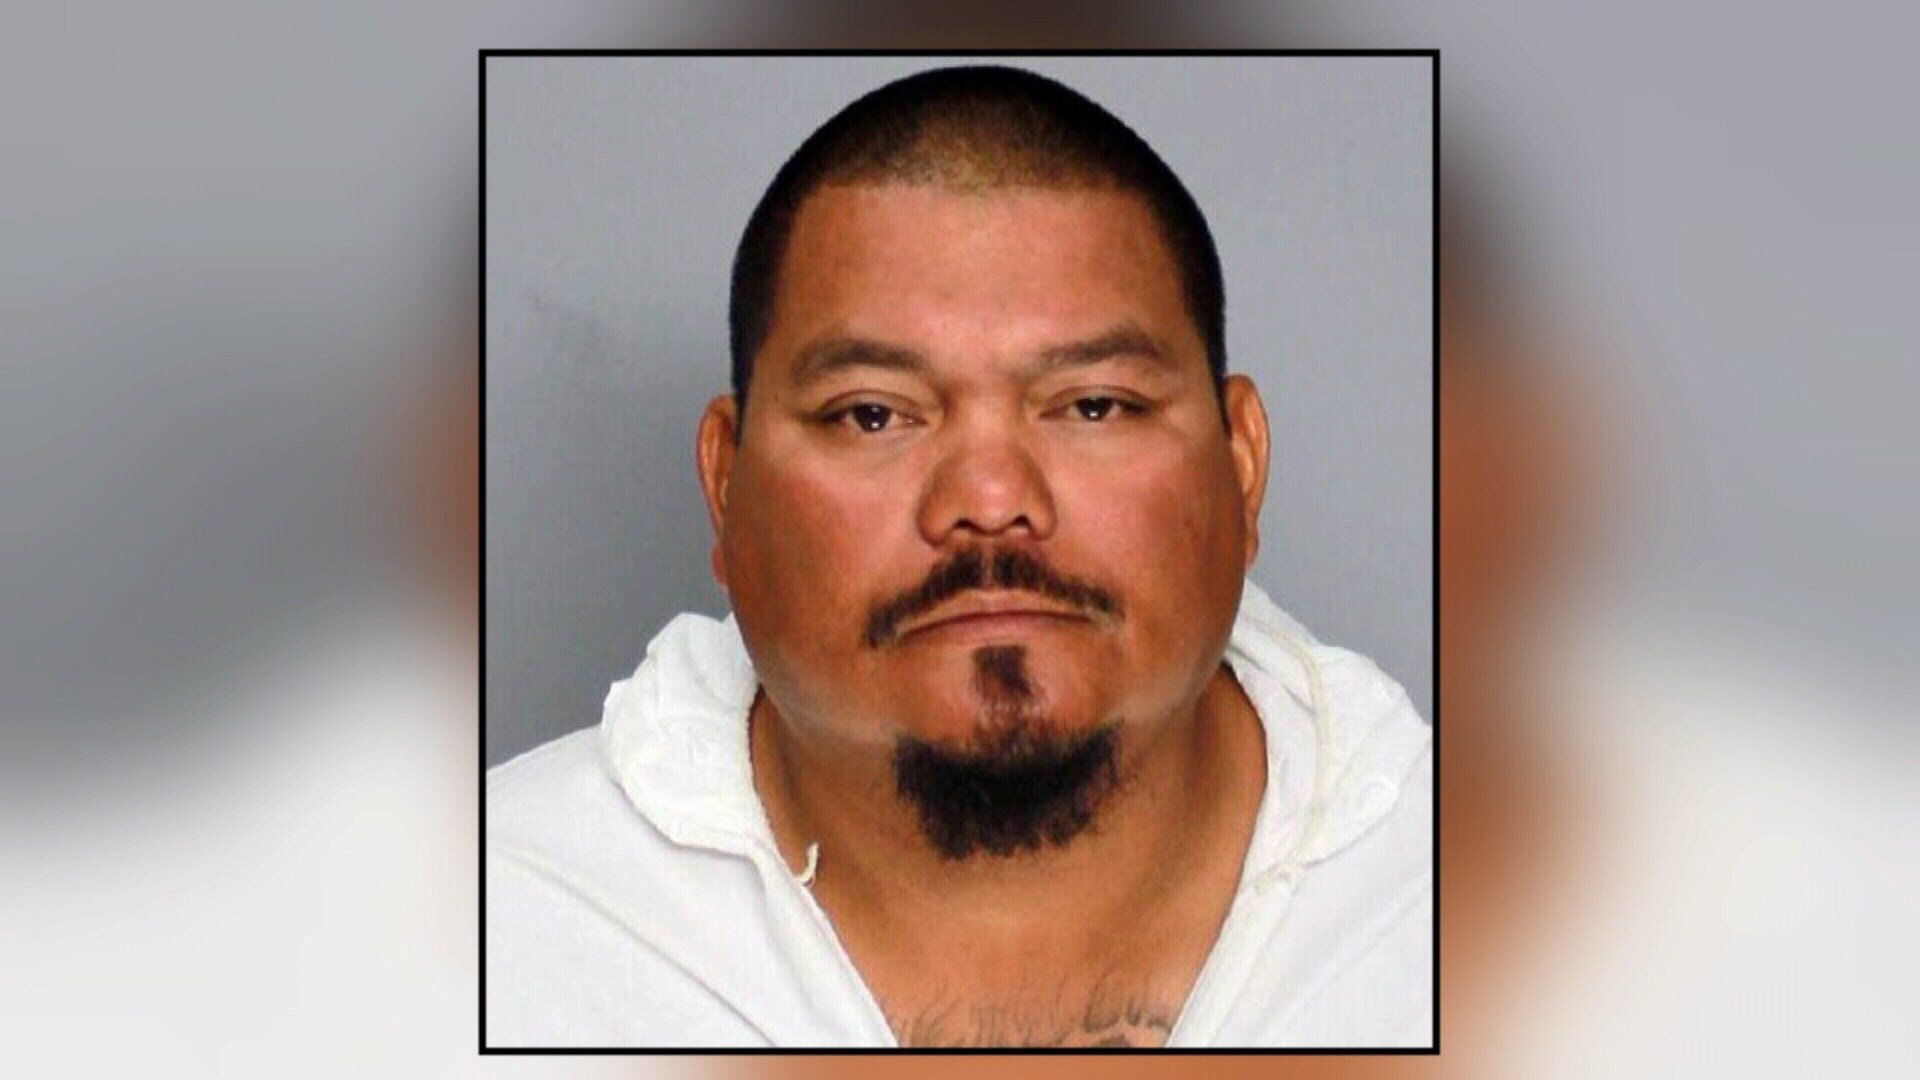 Gregorio Garcia has been charged with murder.